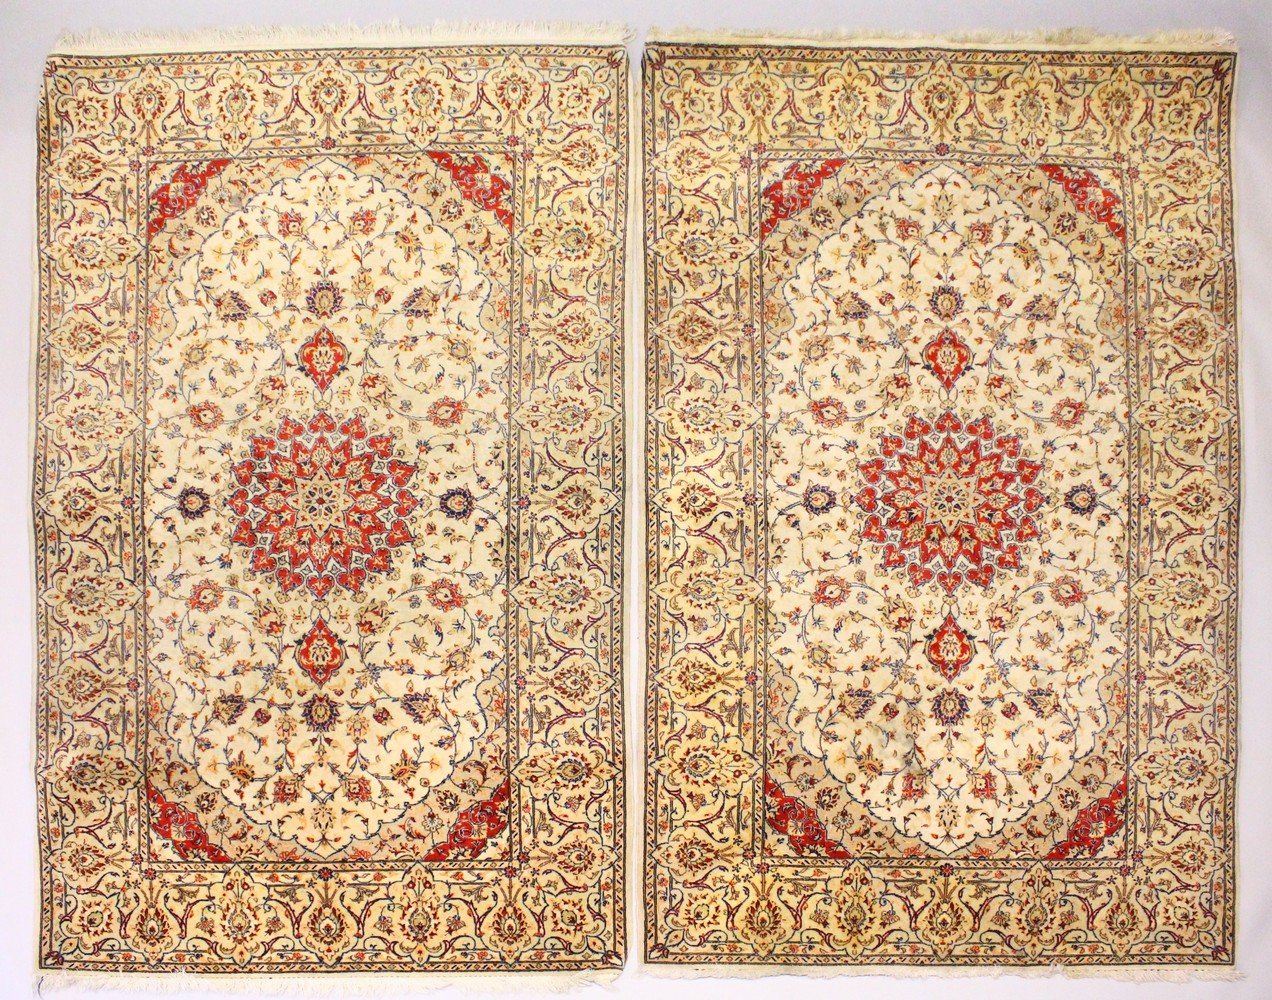 Lot 1033 - A PAIR OF PERSIAN TABRIZ CARPETS, beige ground with a central medallion and floral decoration (